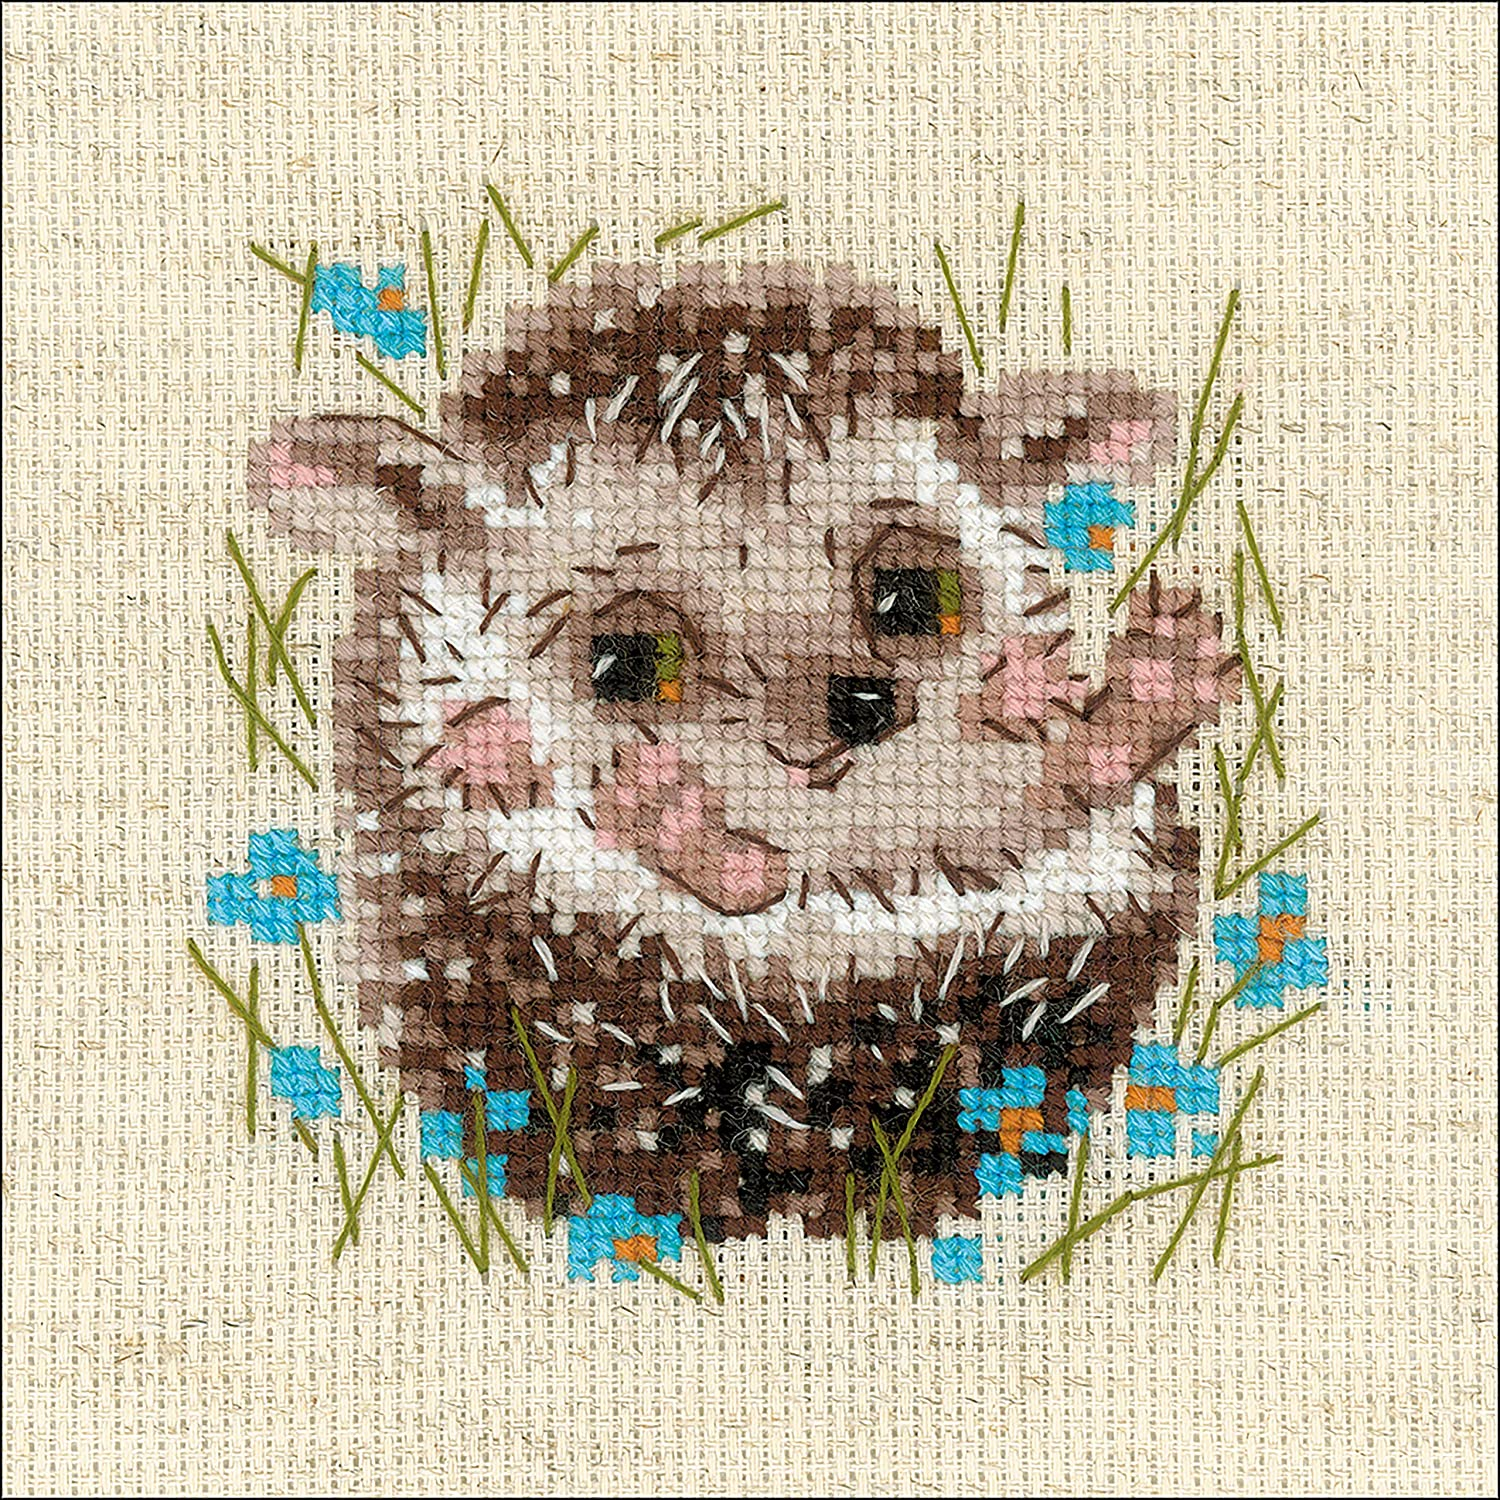 14 RIOLIS R1753 Counted Cross Stitch Kit 5X5 Bouquet of Love